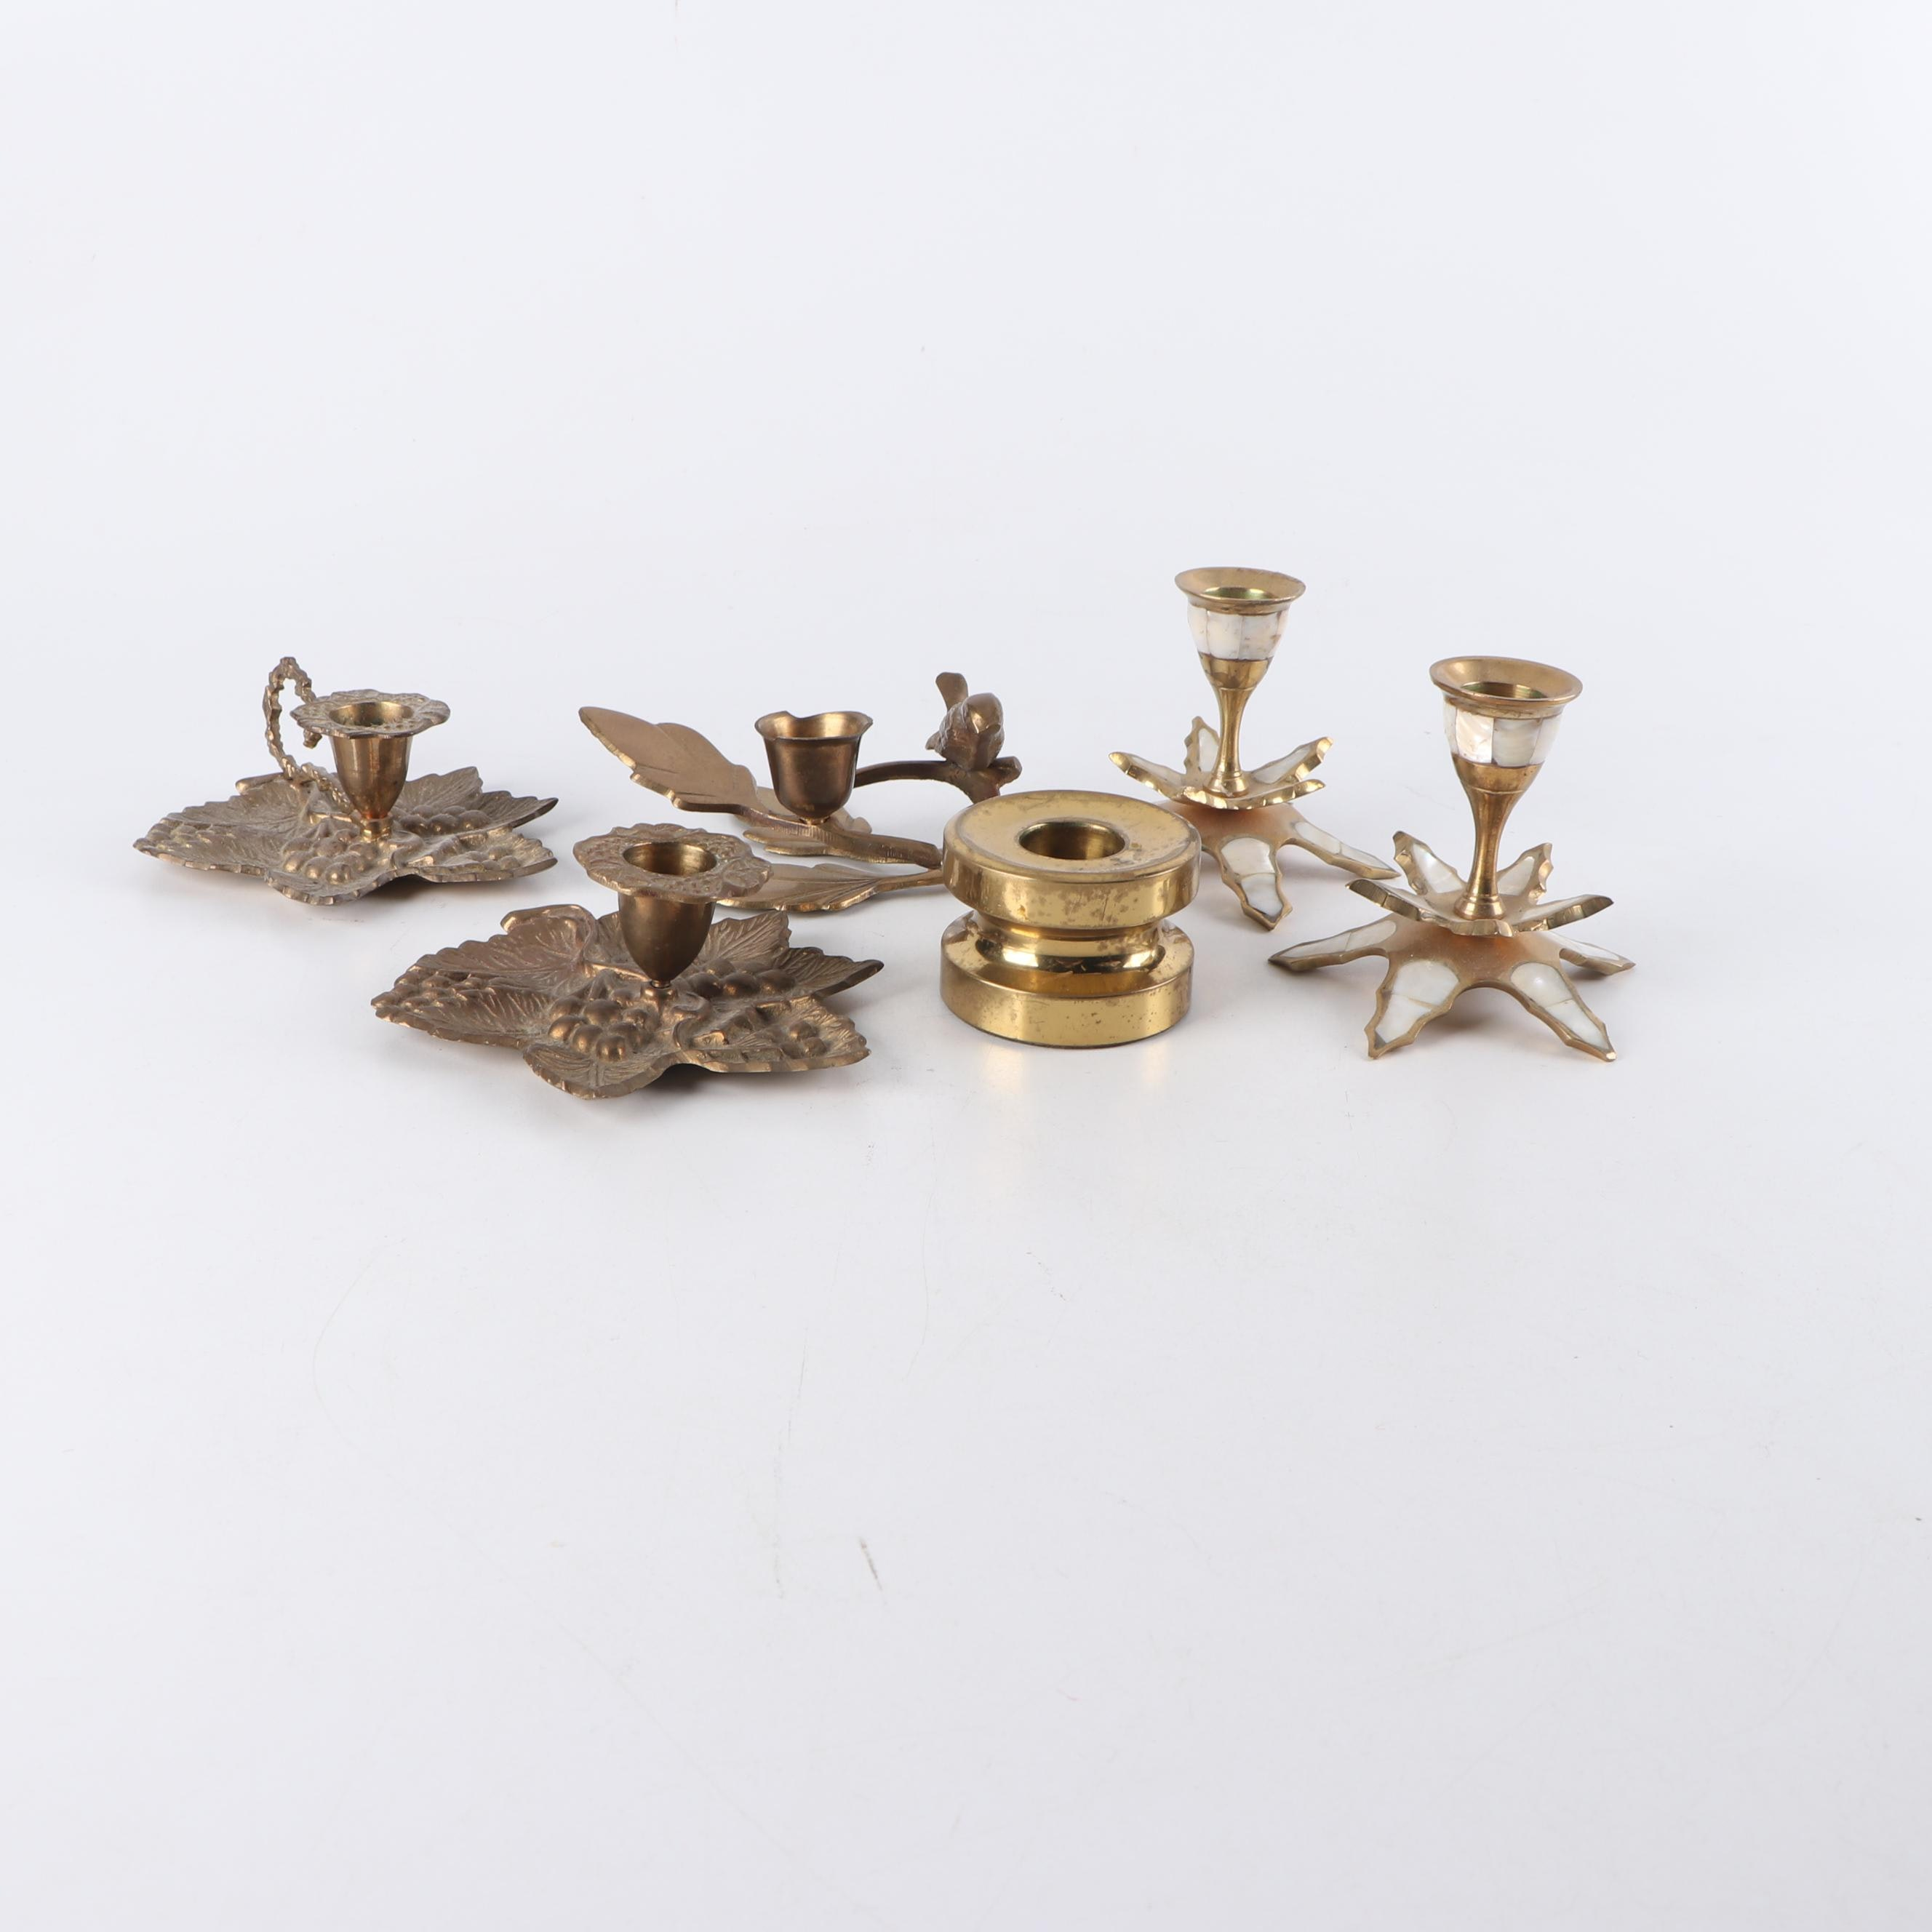 Mother of Pearl Inlaid and Other Brass Candlesticks, Mid 20th Century